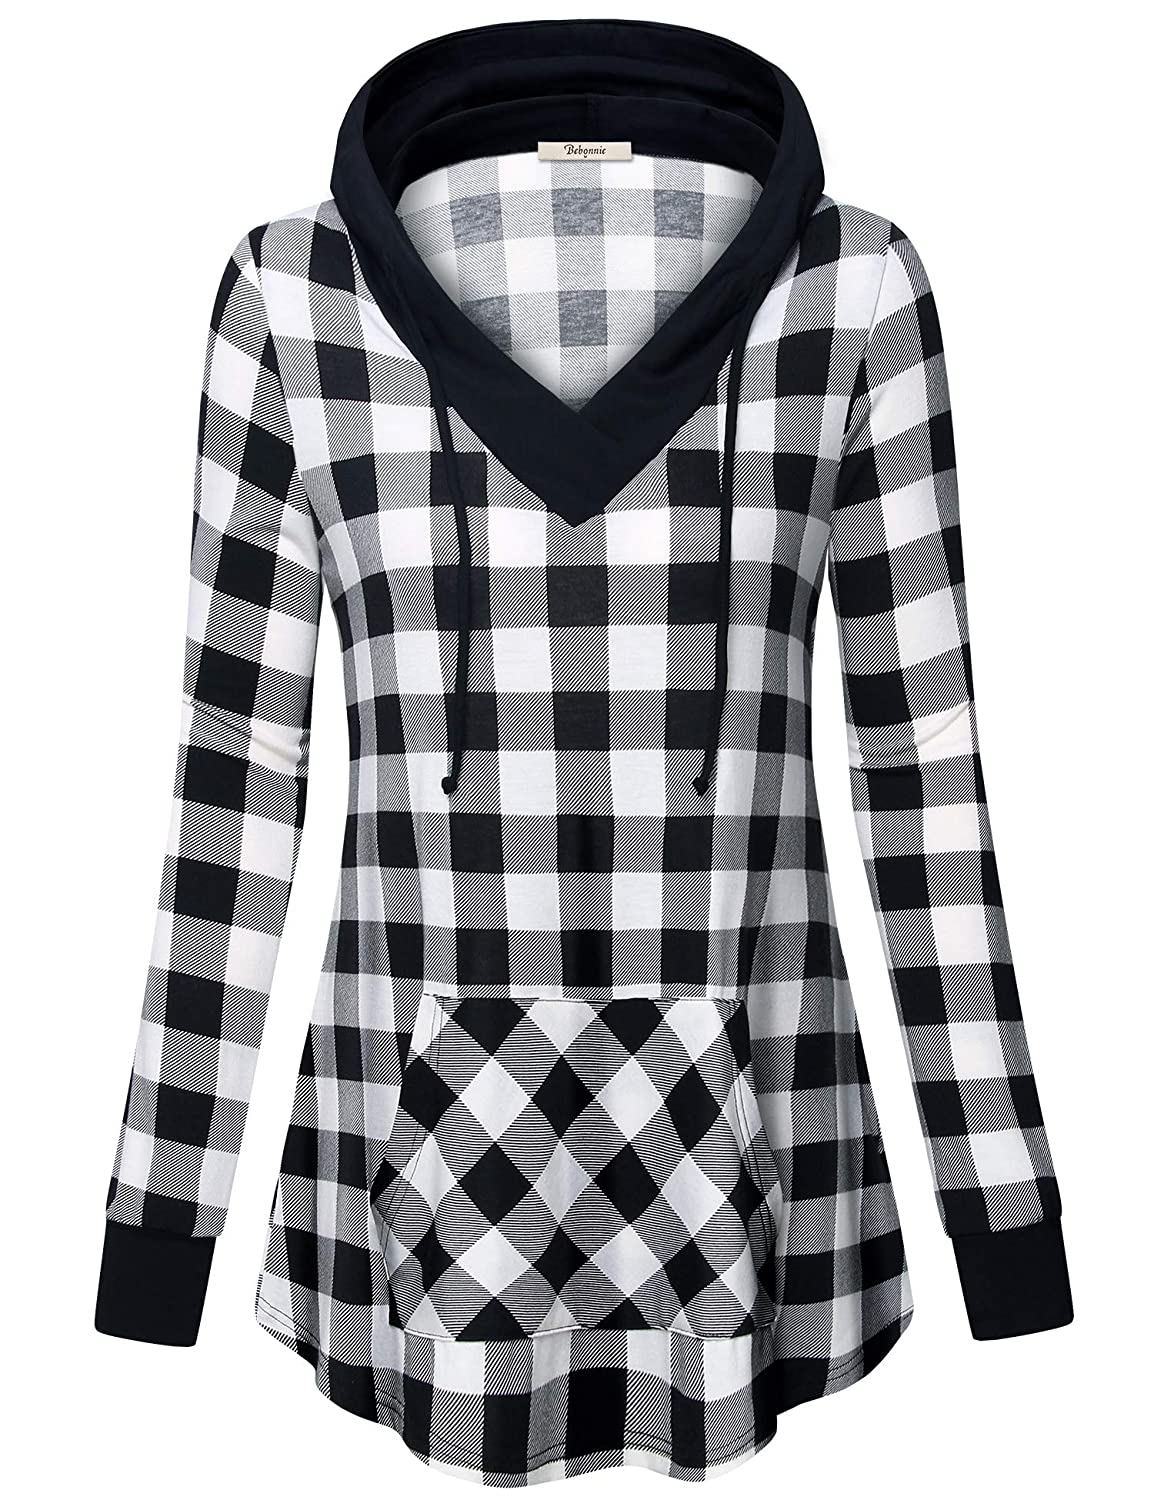 8e4922637f1bed 95% Polyester 5% Spandex V Neck/Hooded with Drawstring/Kangaroo Pocket/Plaid  Hood,Hem and Cuff/Splicing Design Note:High elastic knit lightweight fabric  ...